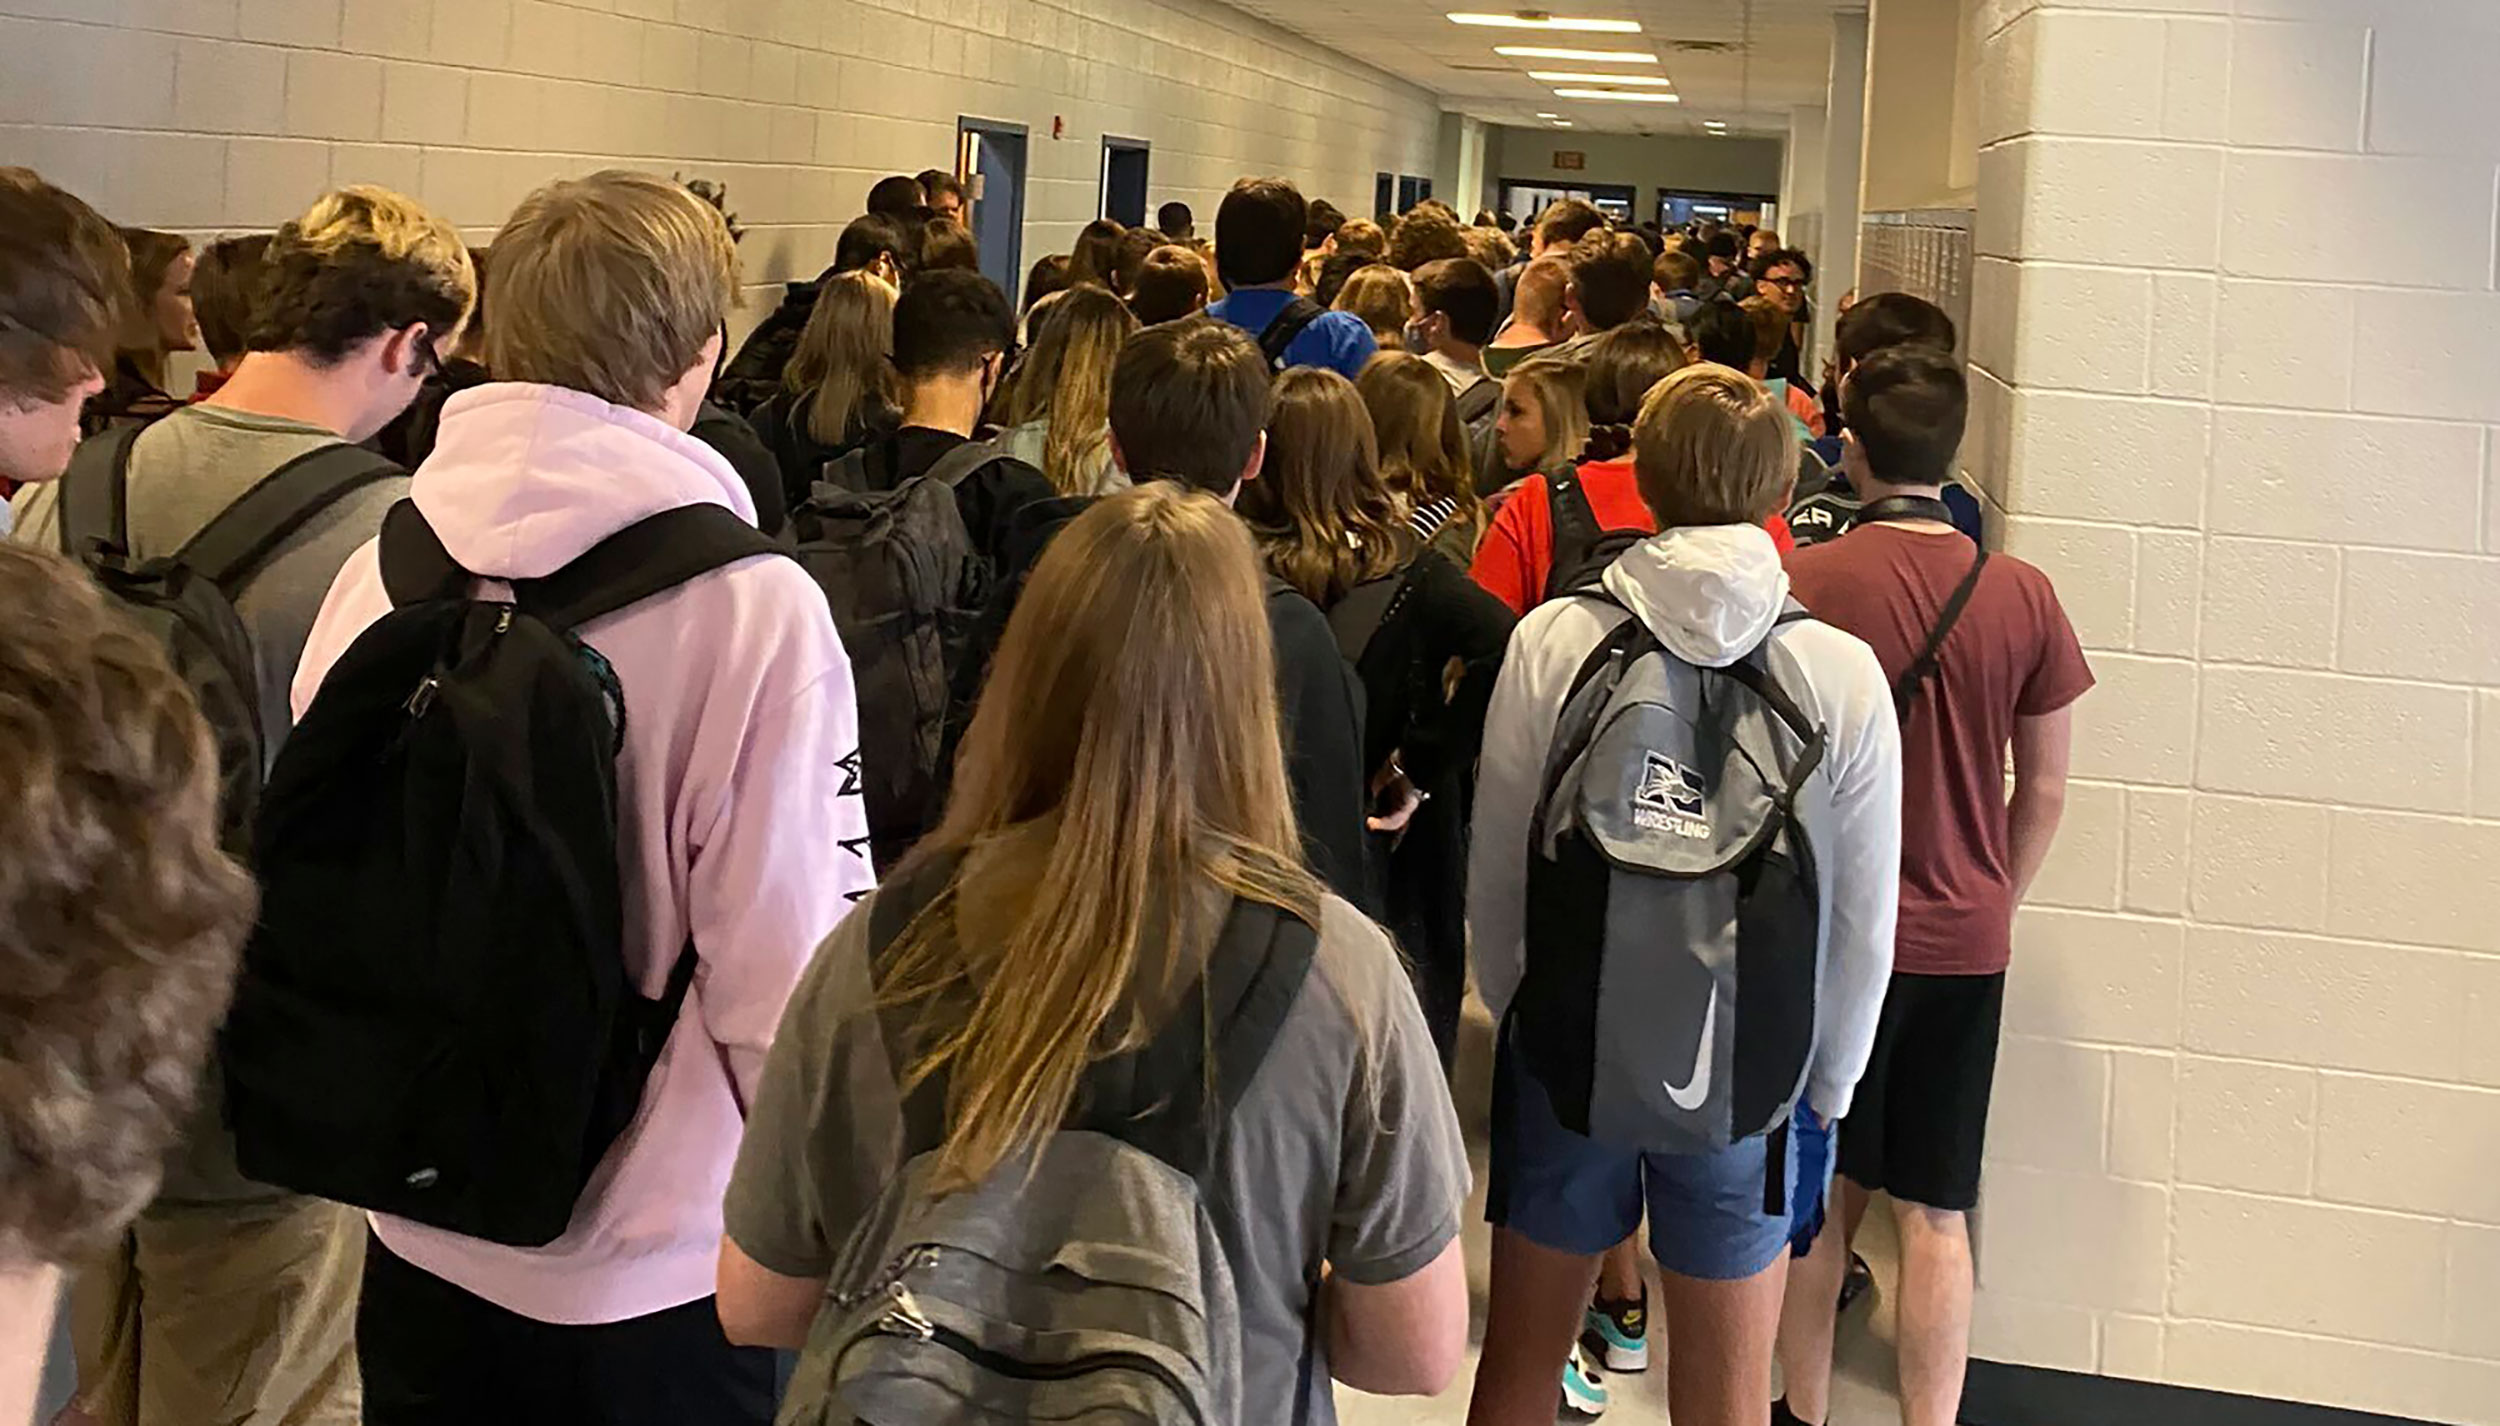 A school nurse in the district with the crowded hallway photo quit over a scarcity of Covid-19 precautions. Rising cases are 'not the validation' she wanted